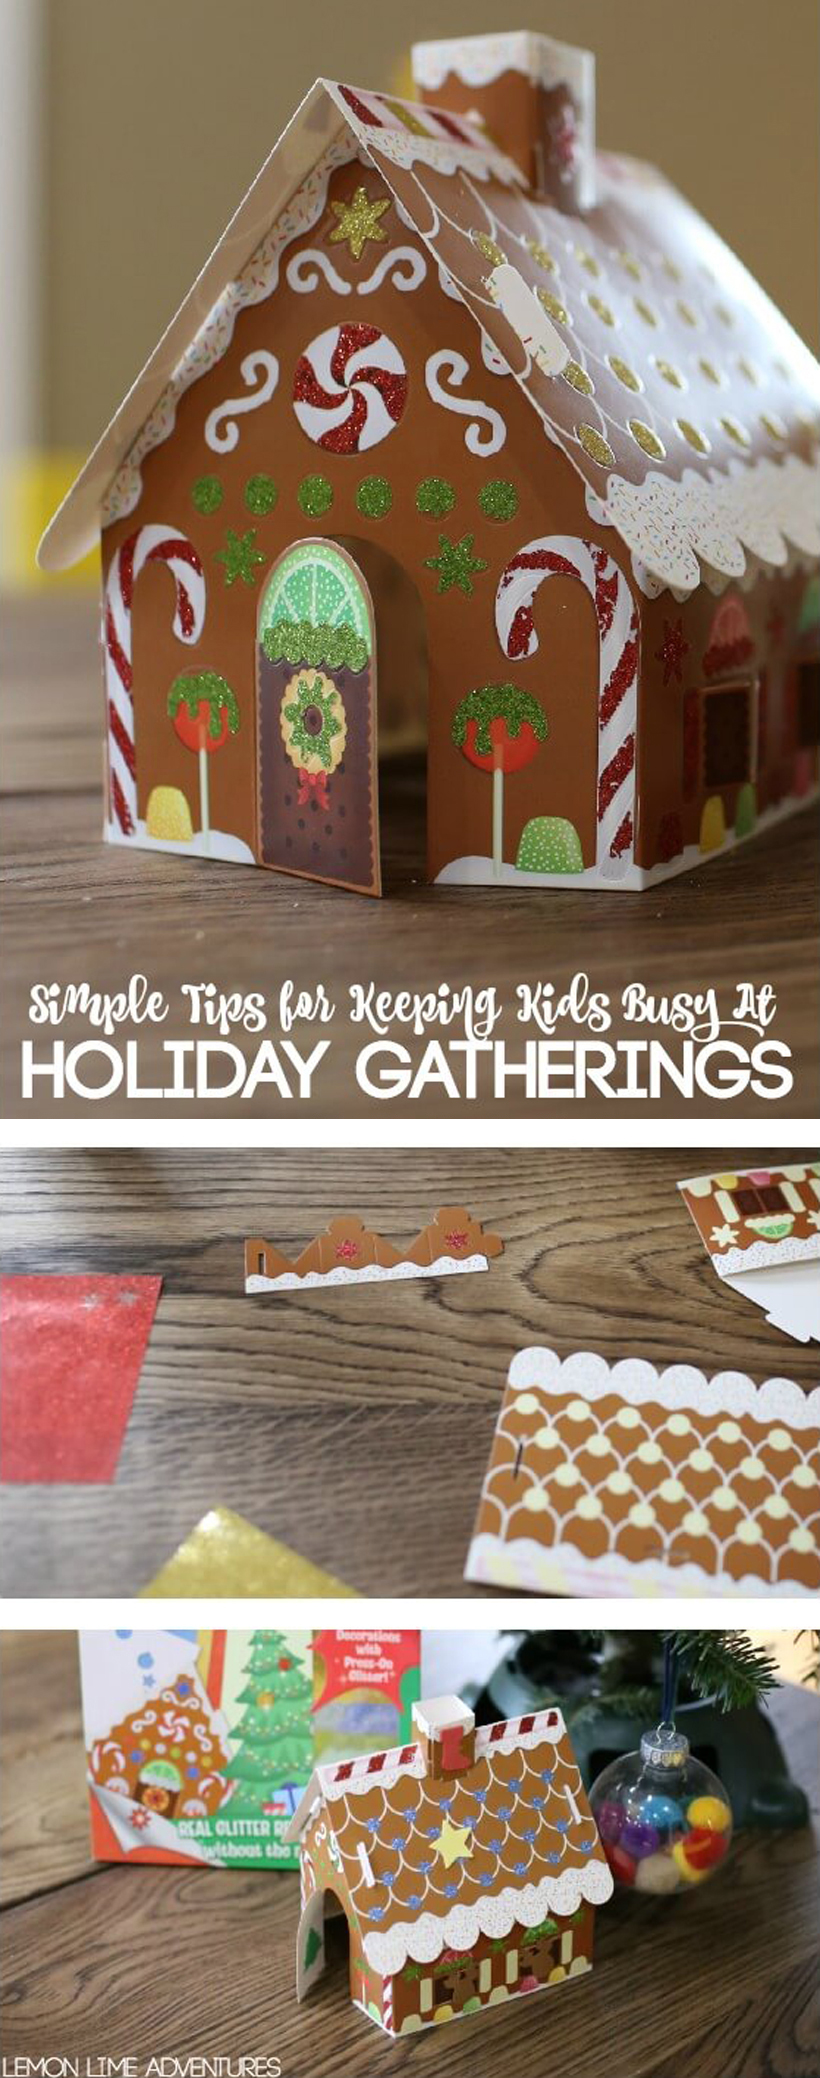 Simple Tips for Keeping Kids Busy at Family Gatherings *Read about a few simple tips for keeping kids busy during family gatherings this fall and holiday season, on the Melissa & Doug Blog.